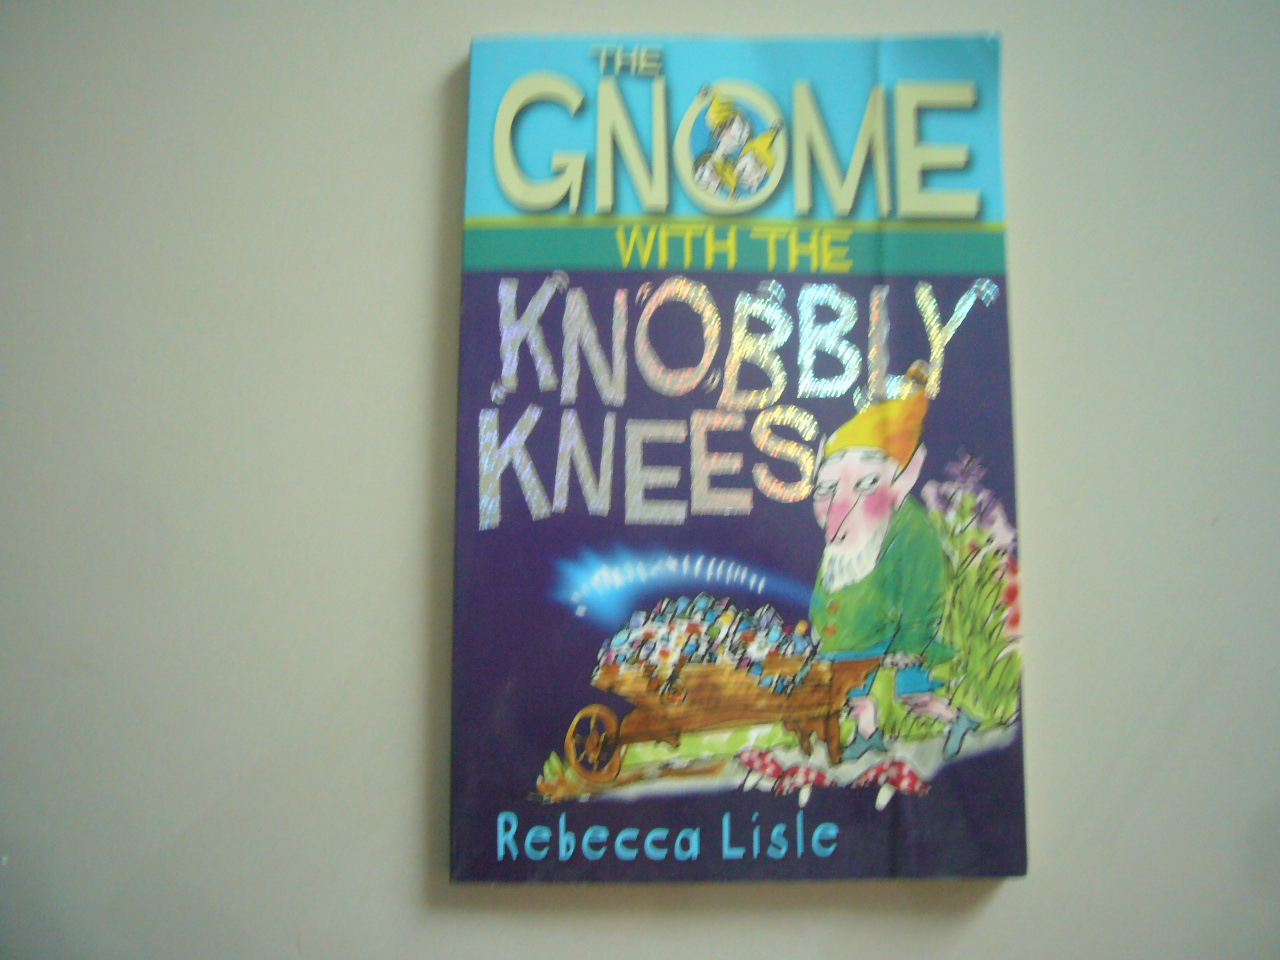 The Gnome with the Knobbly Kneels (มีตำหนิ)